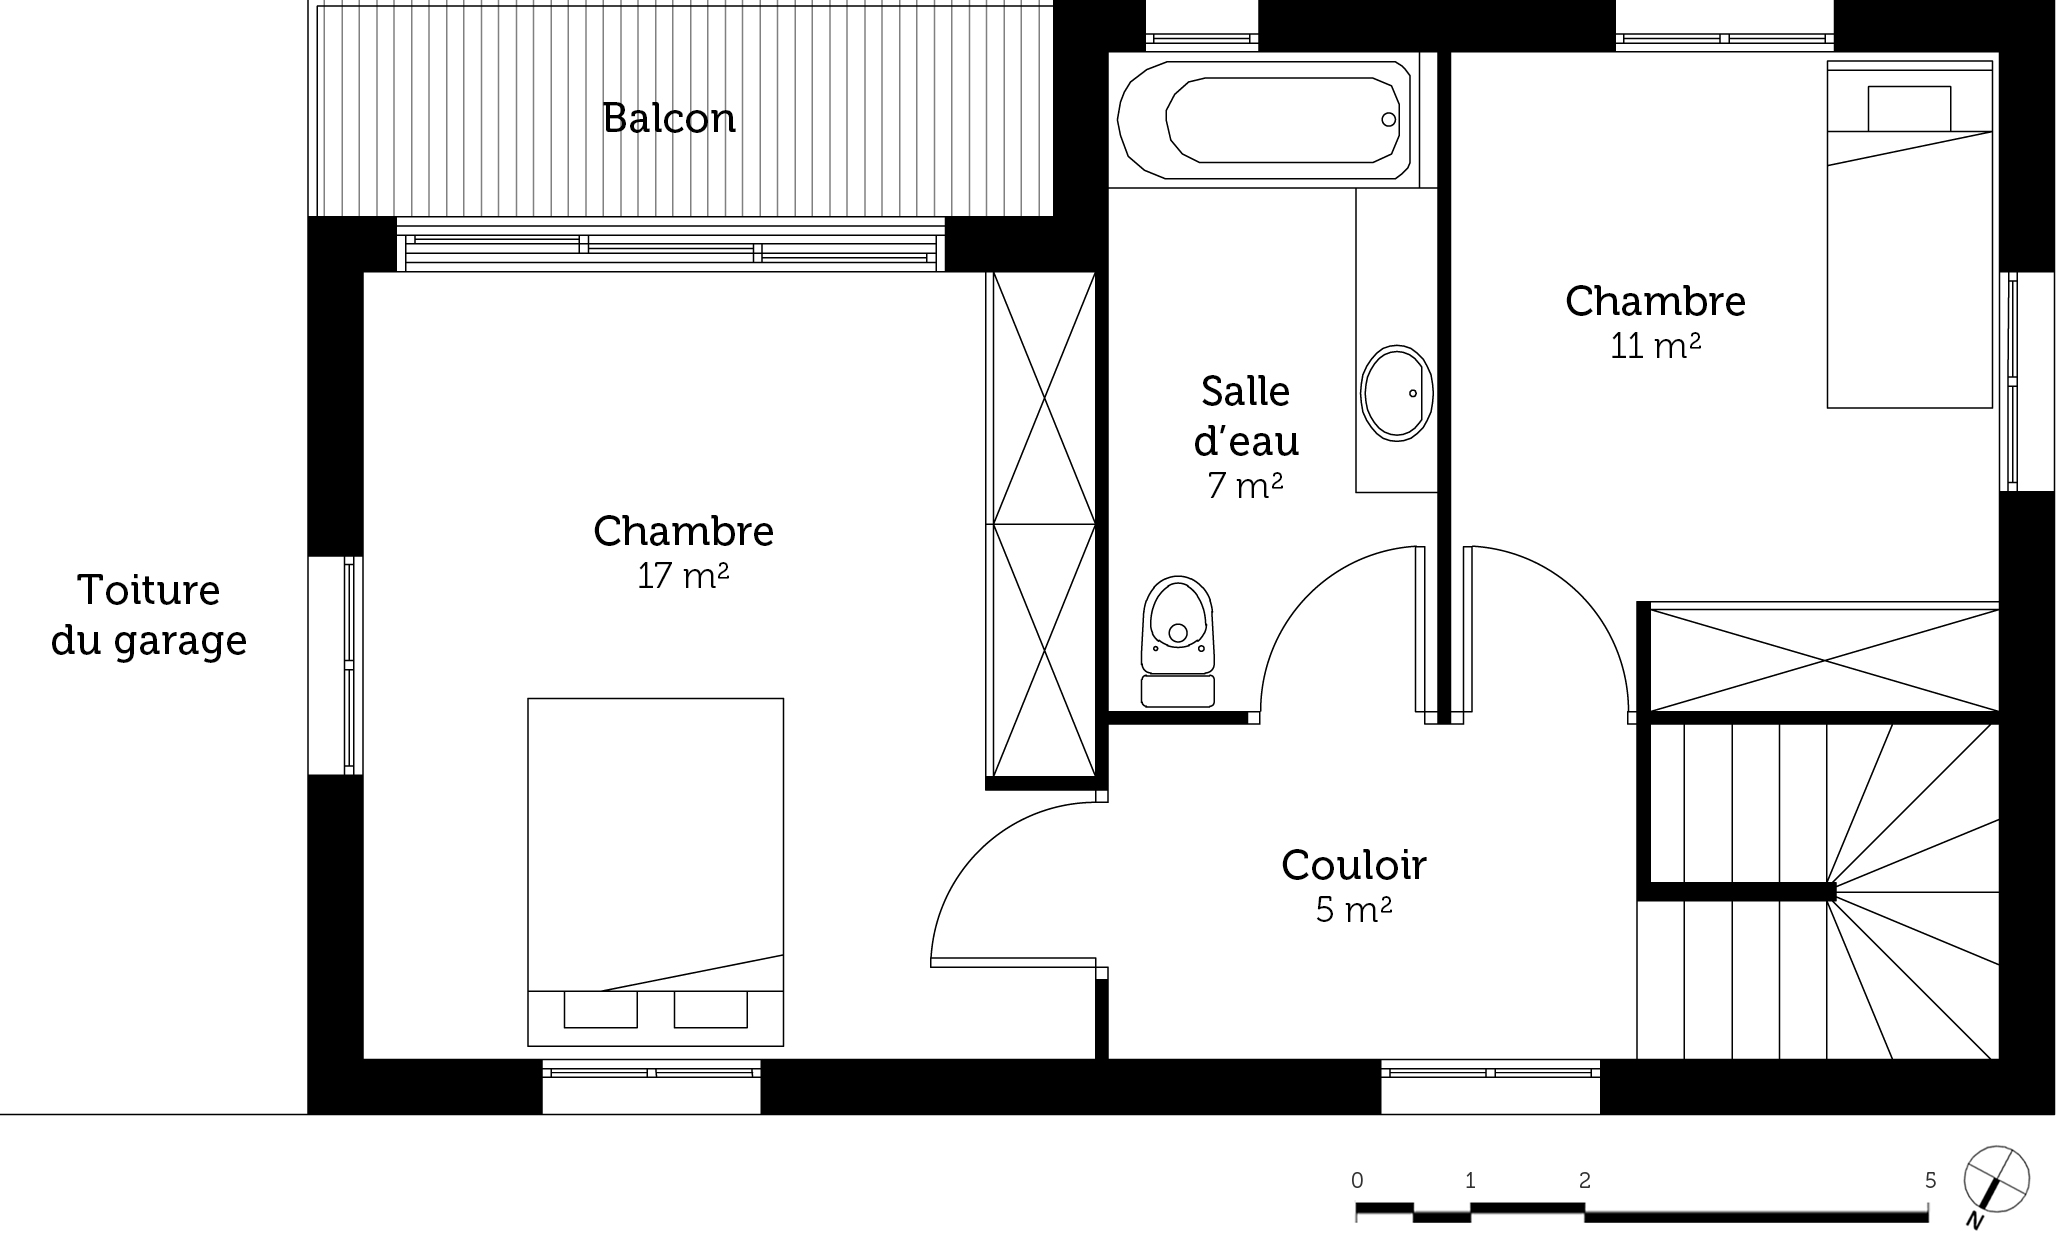 Plan maison 90 m avec balcon ooreka for Plans de maison consultables